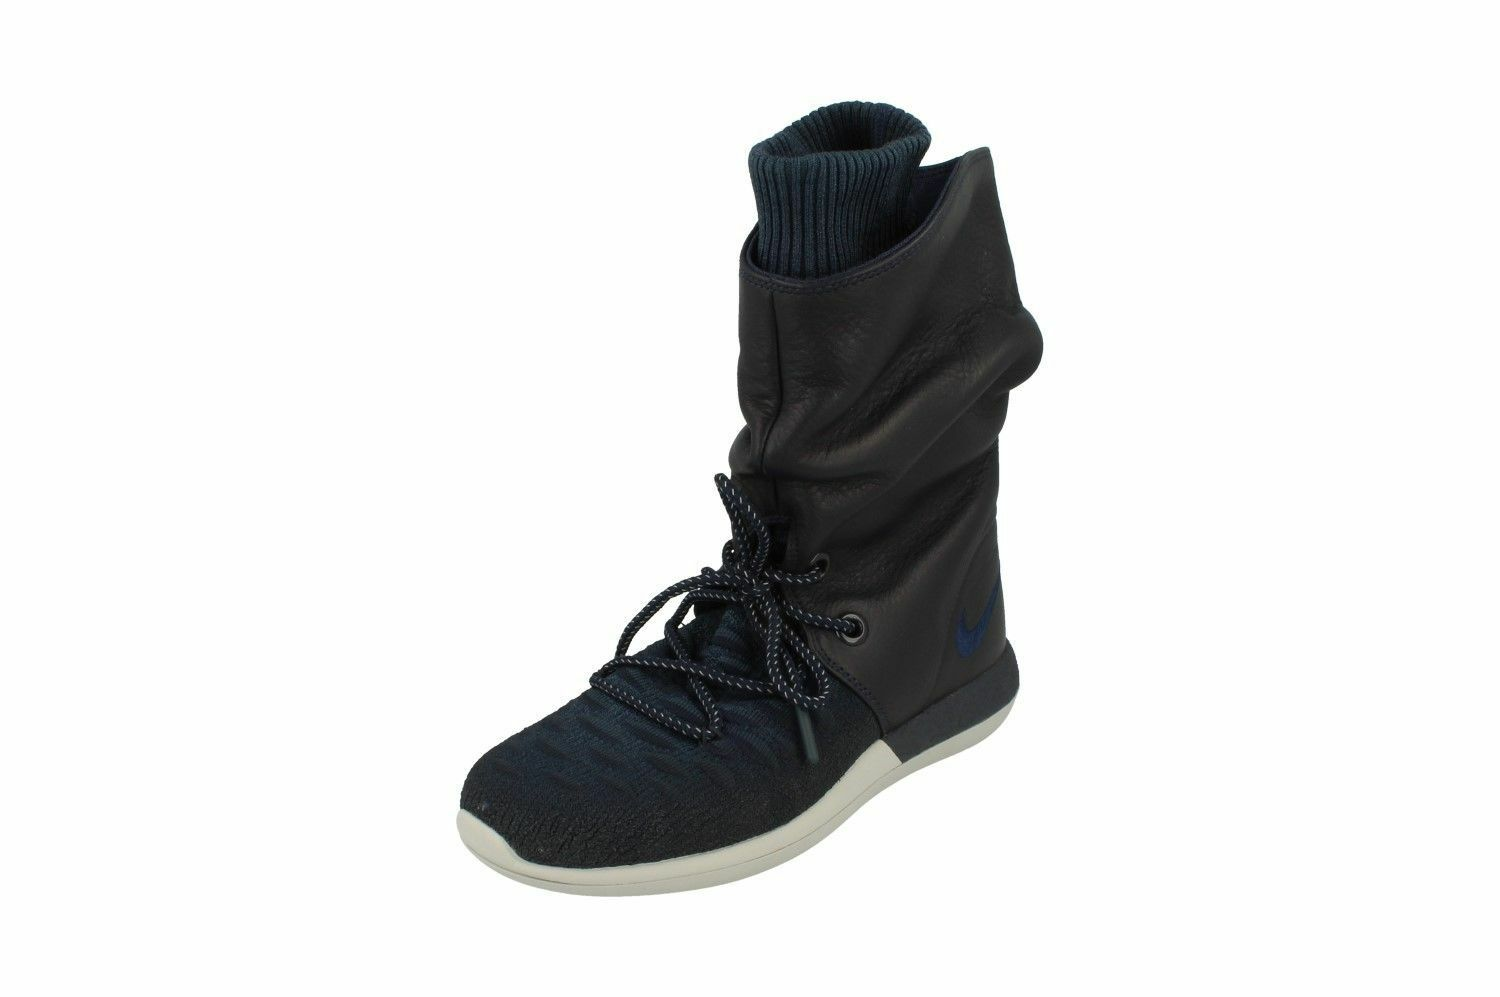 Nike Two Damens Roshe Two Nike Hi Flyknit Stylish Winter Stiefel Trainers Sneakers 4016fc